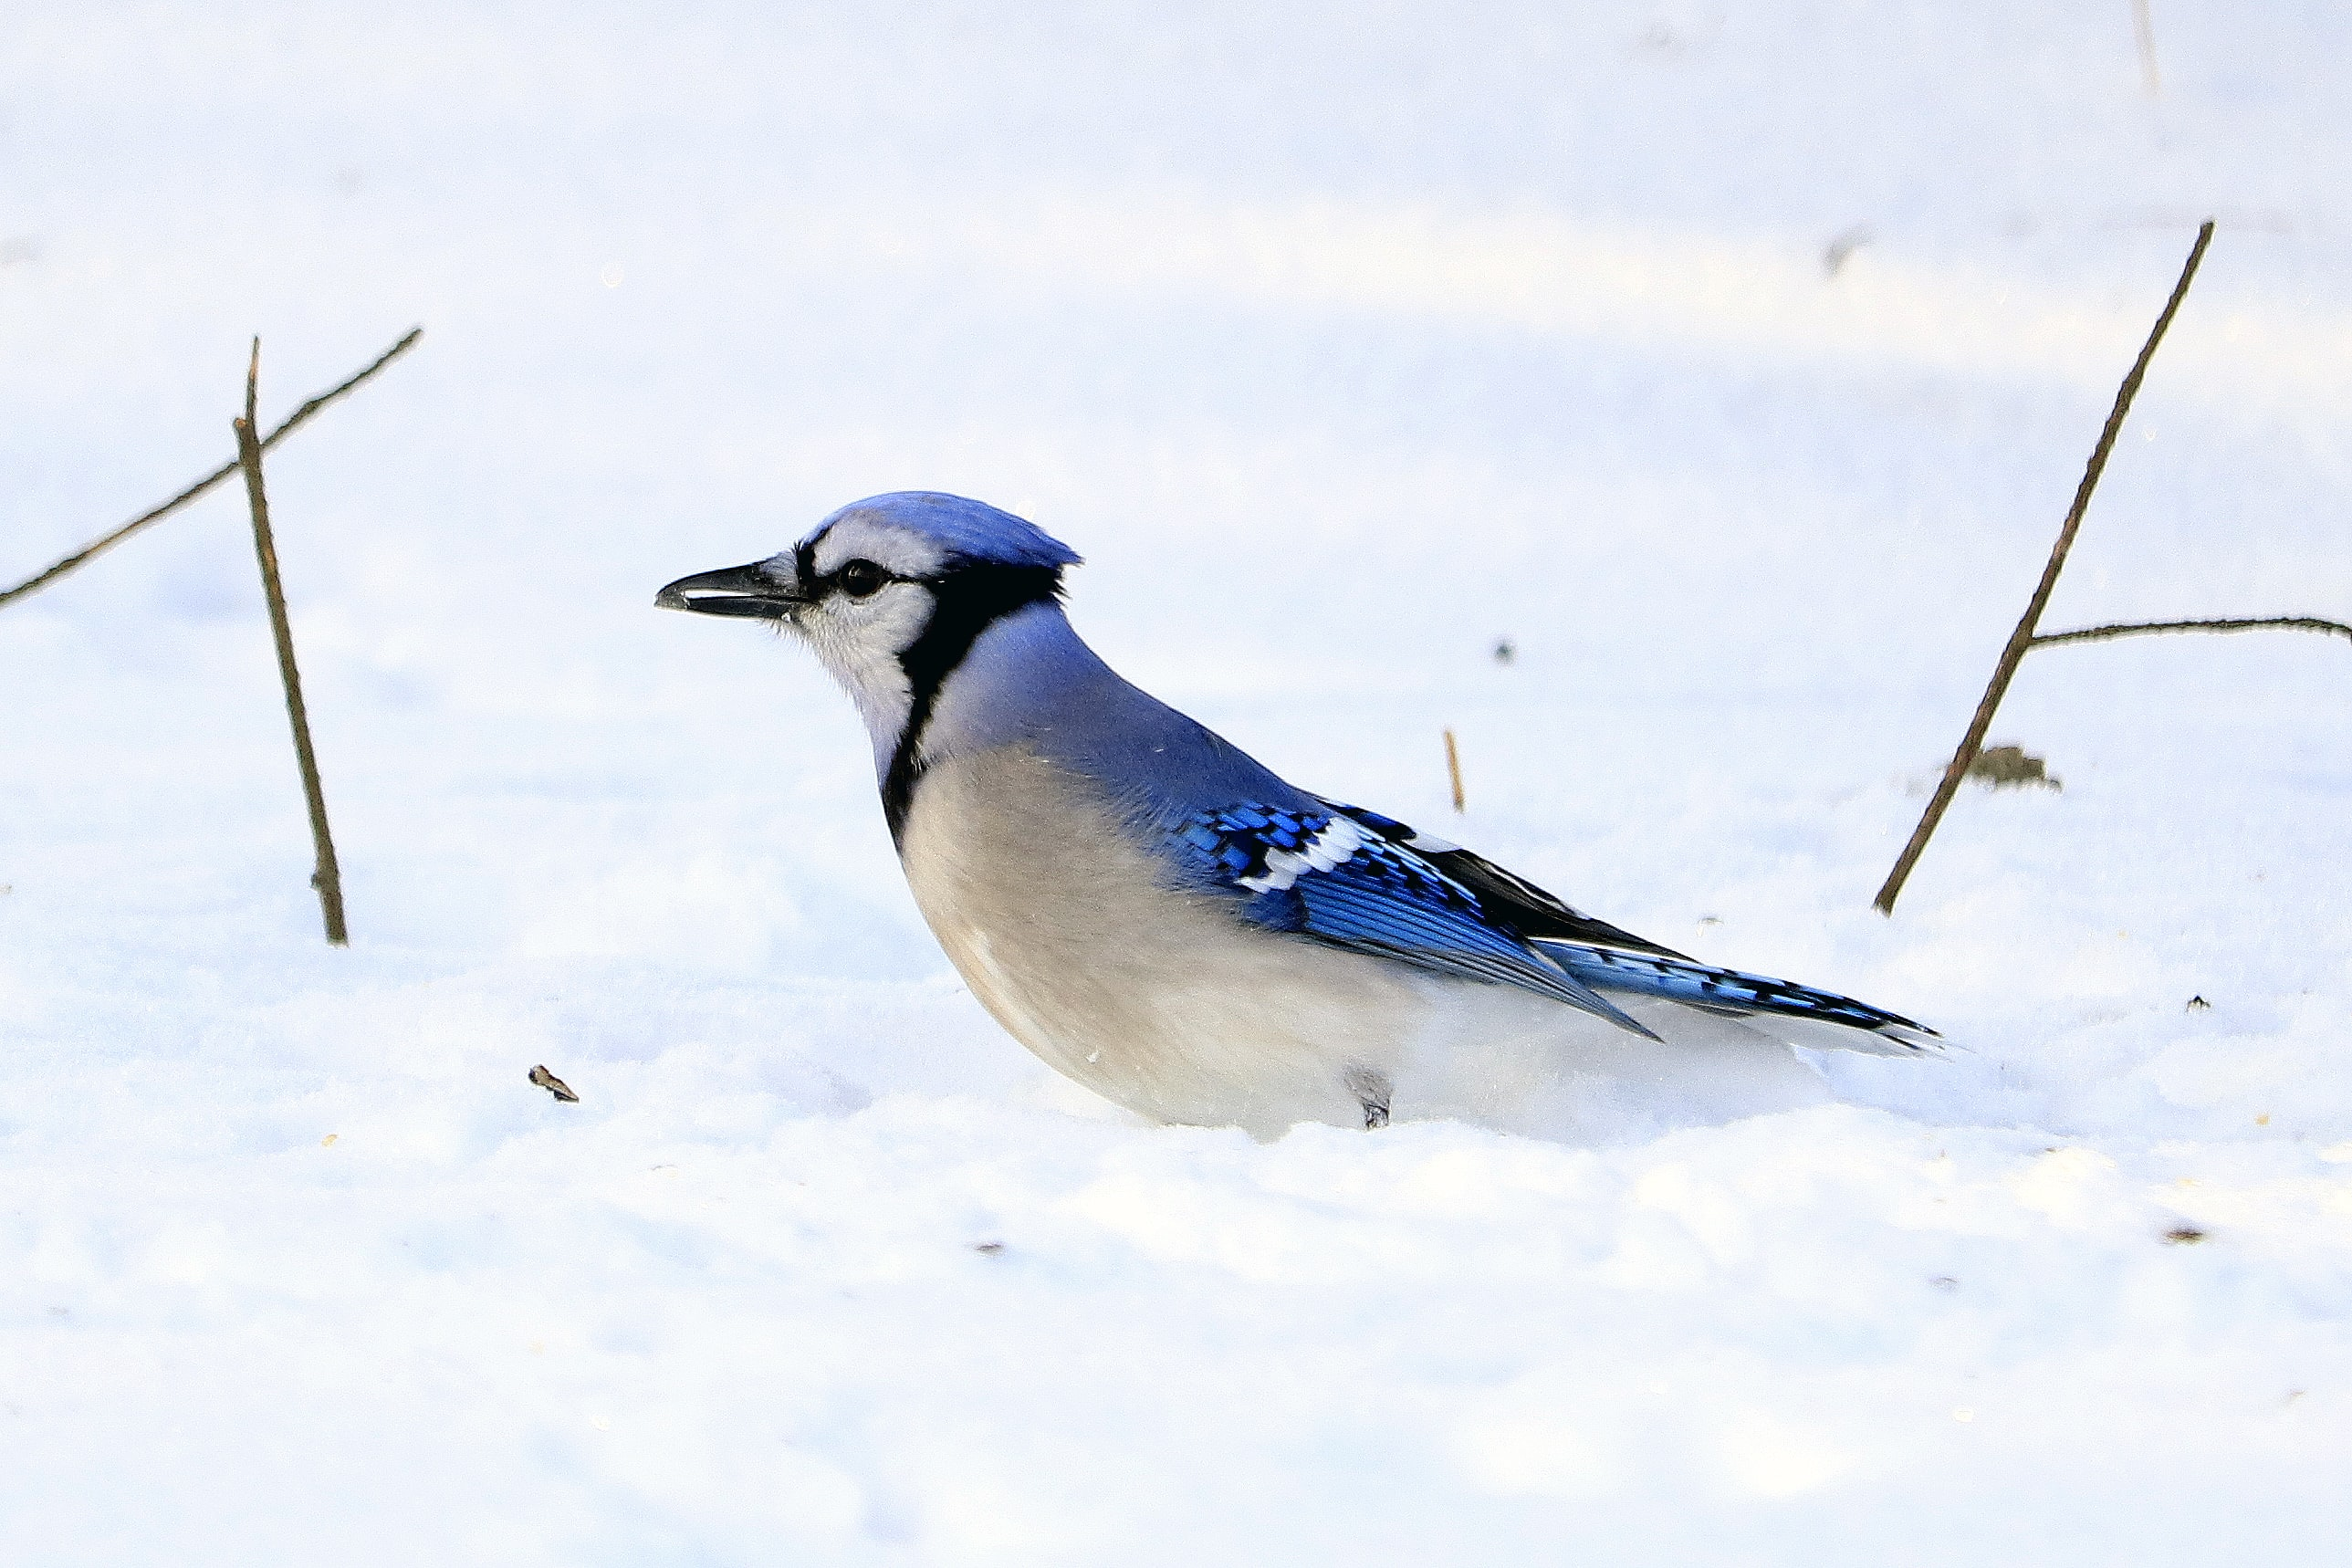 Blue Jays bird on white snow